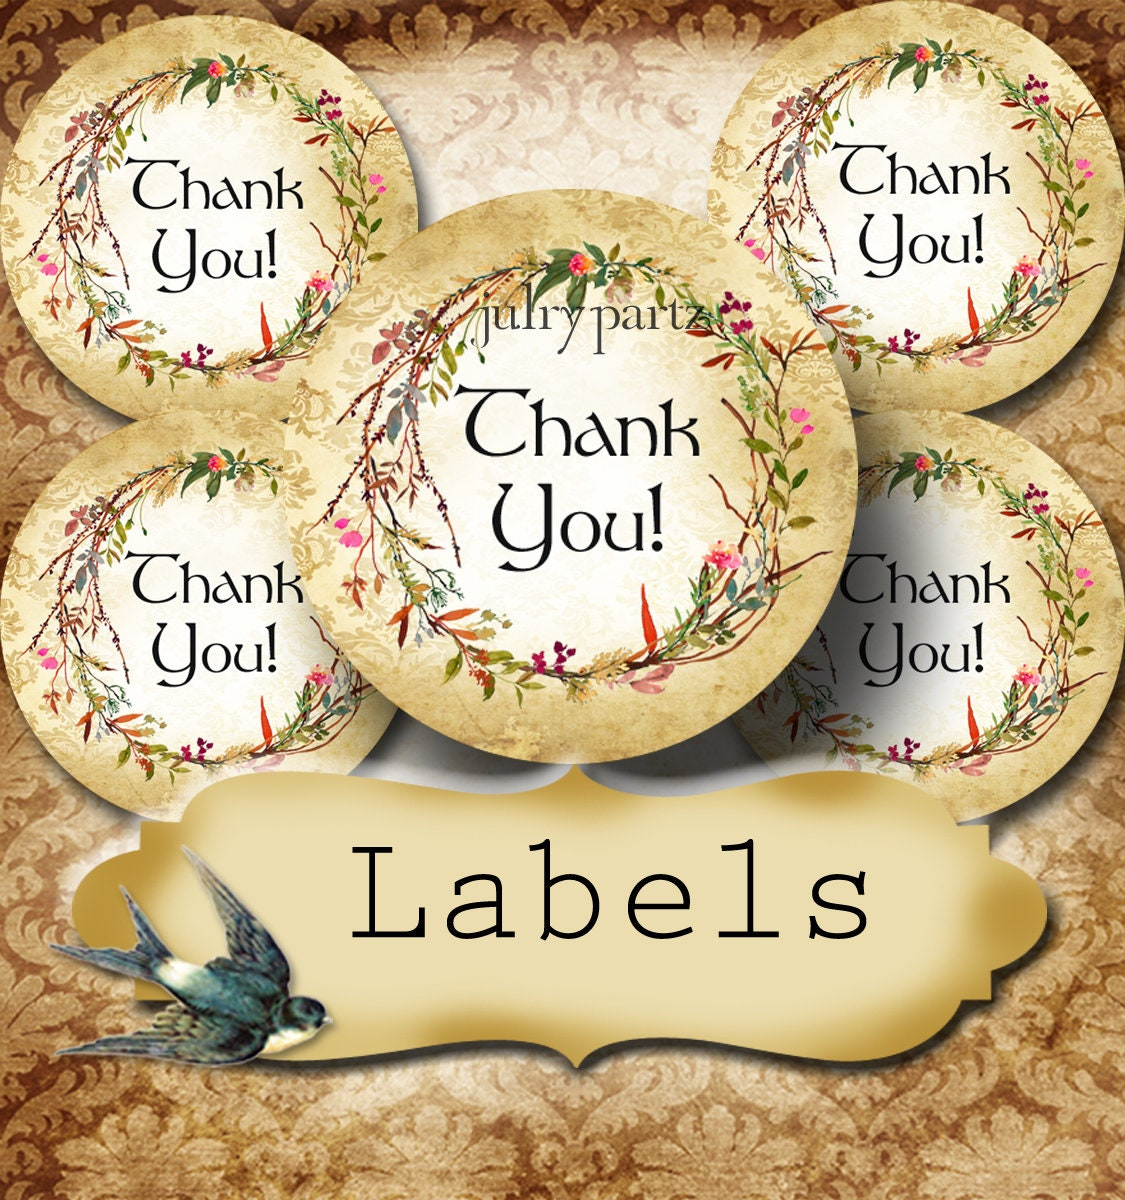 Premade •60 custom 1 5 x 1 5 round stickers•round labels